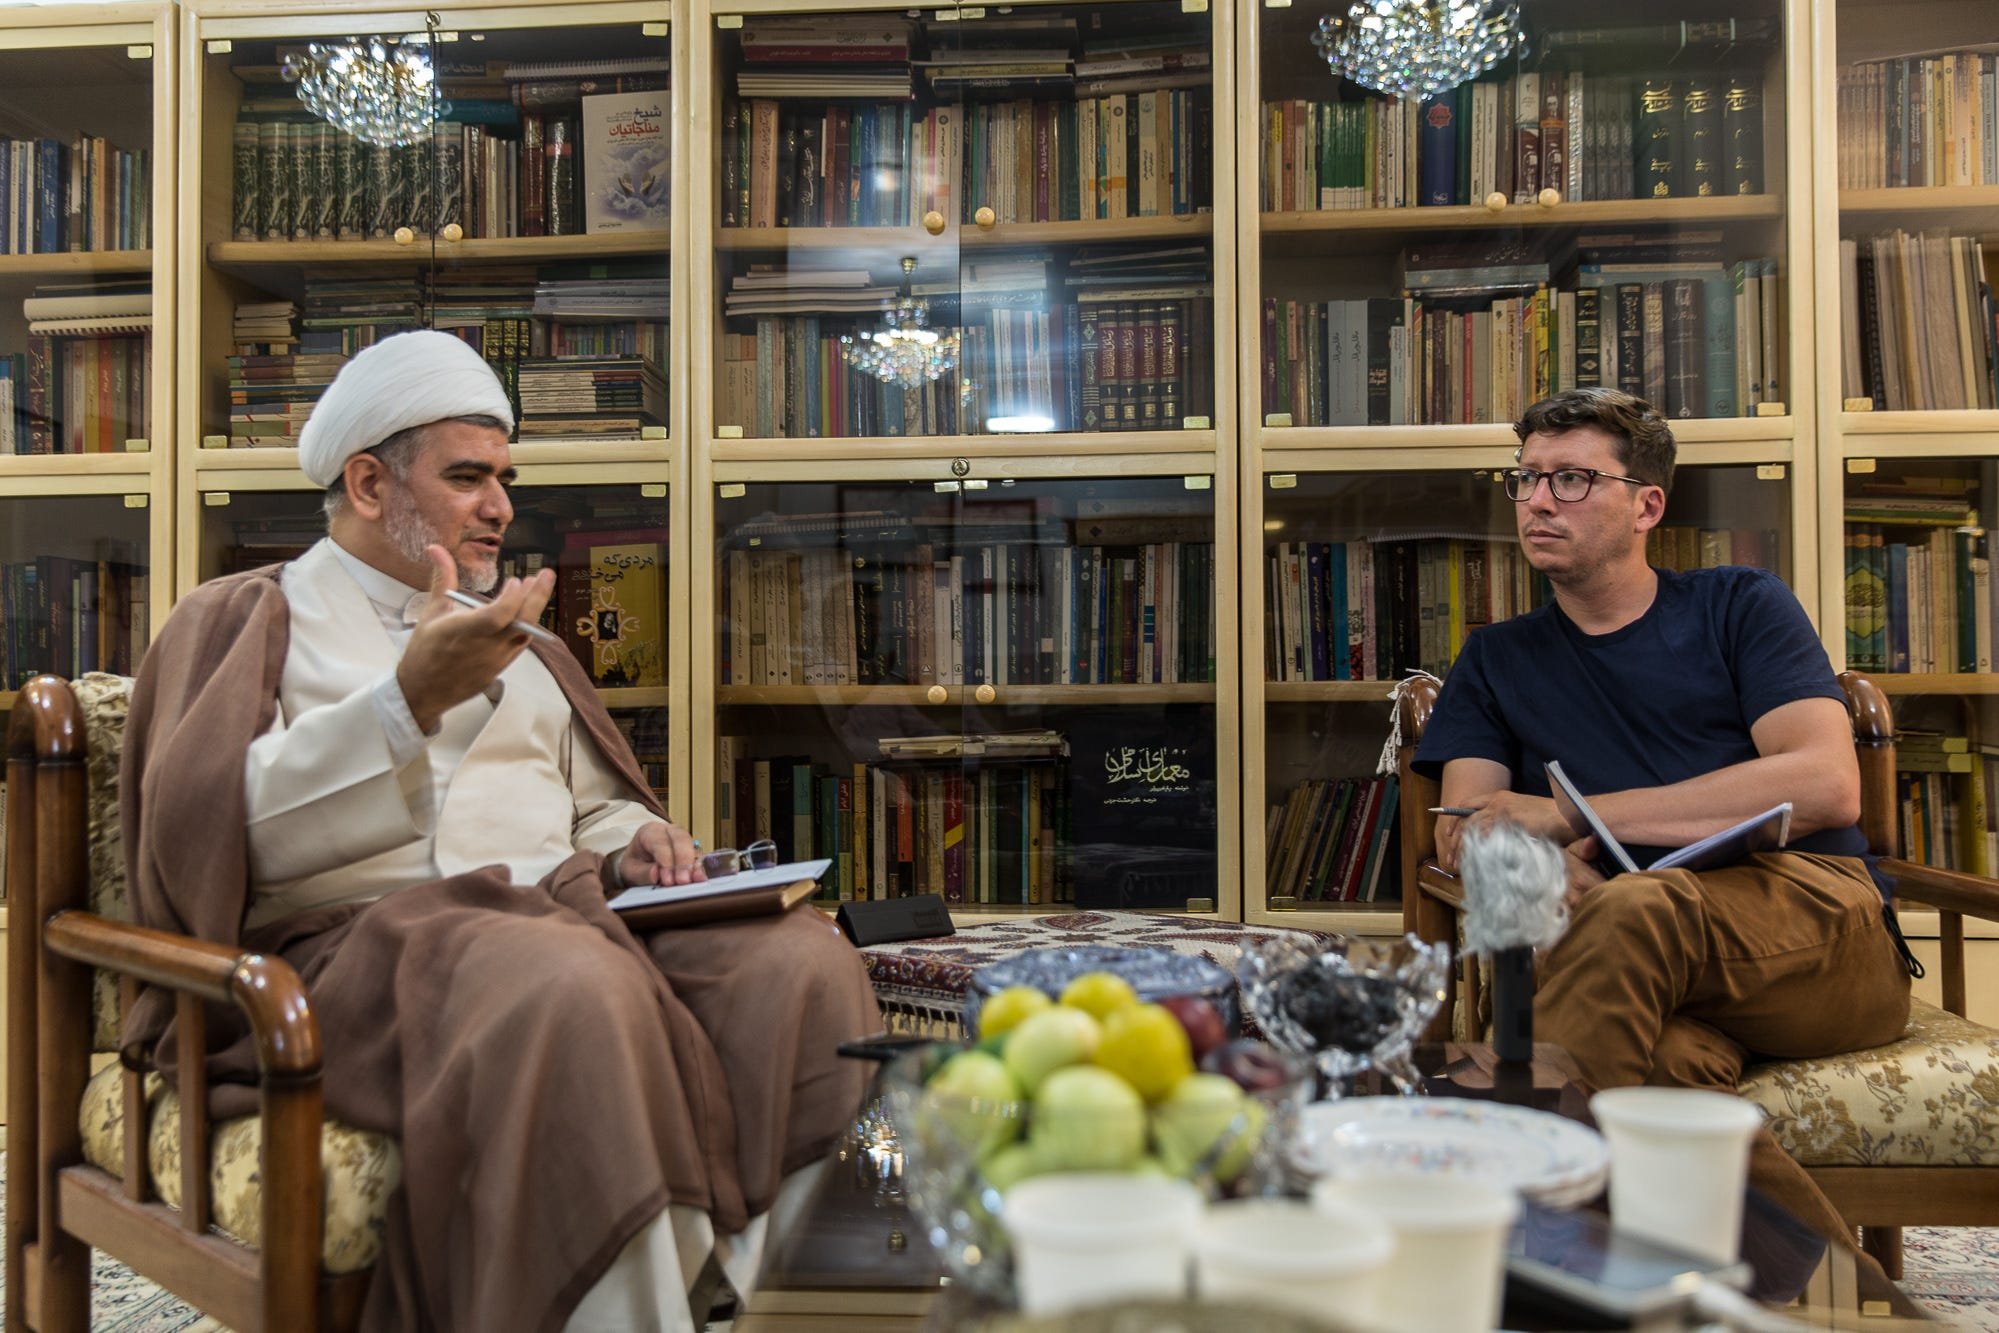 Mohsen Alviri, left, a cleric and religious scholar, converses with USA TODAY reporter Kim Hjelmgaard in his office in Qom, Iran, on July 12, 2018.